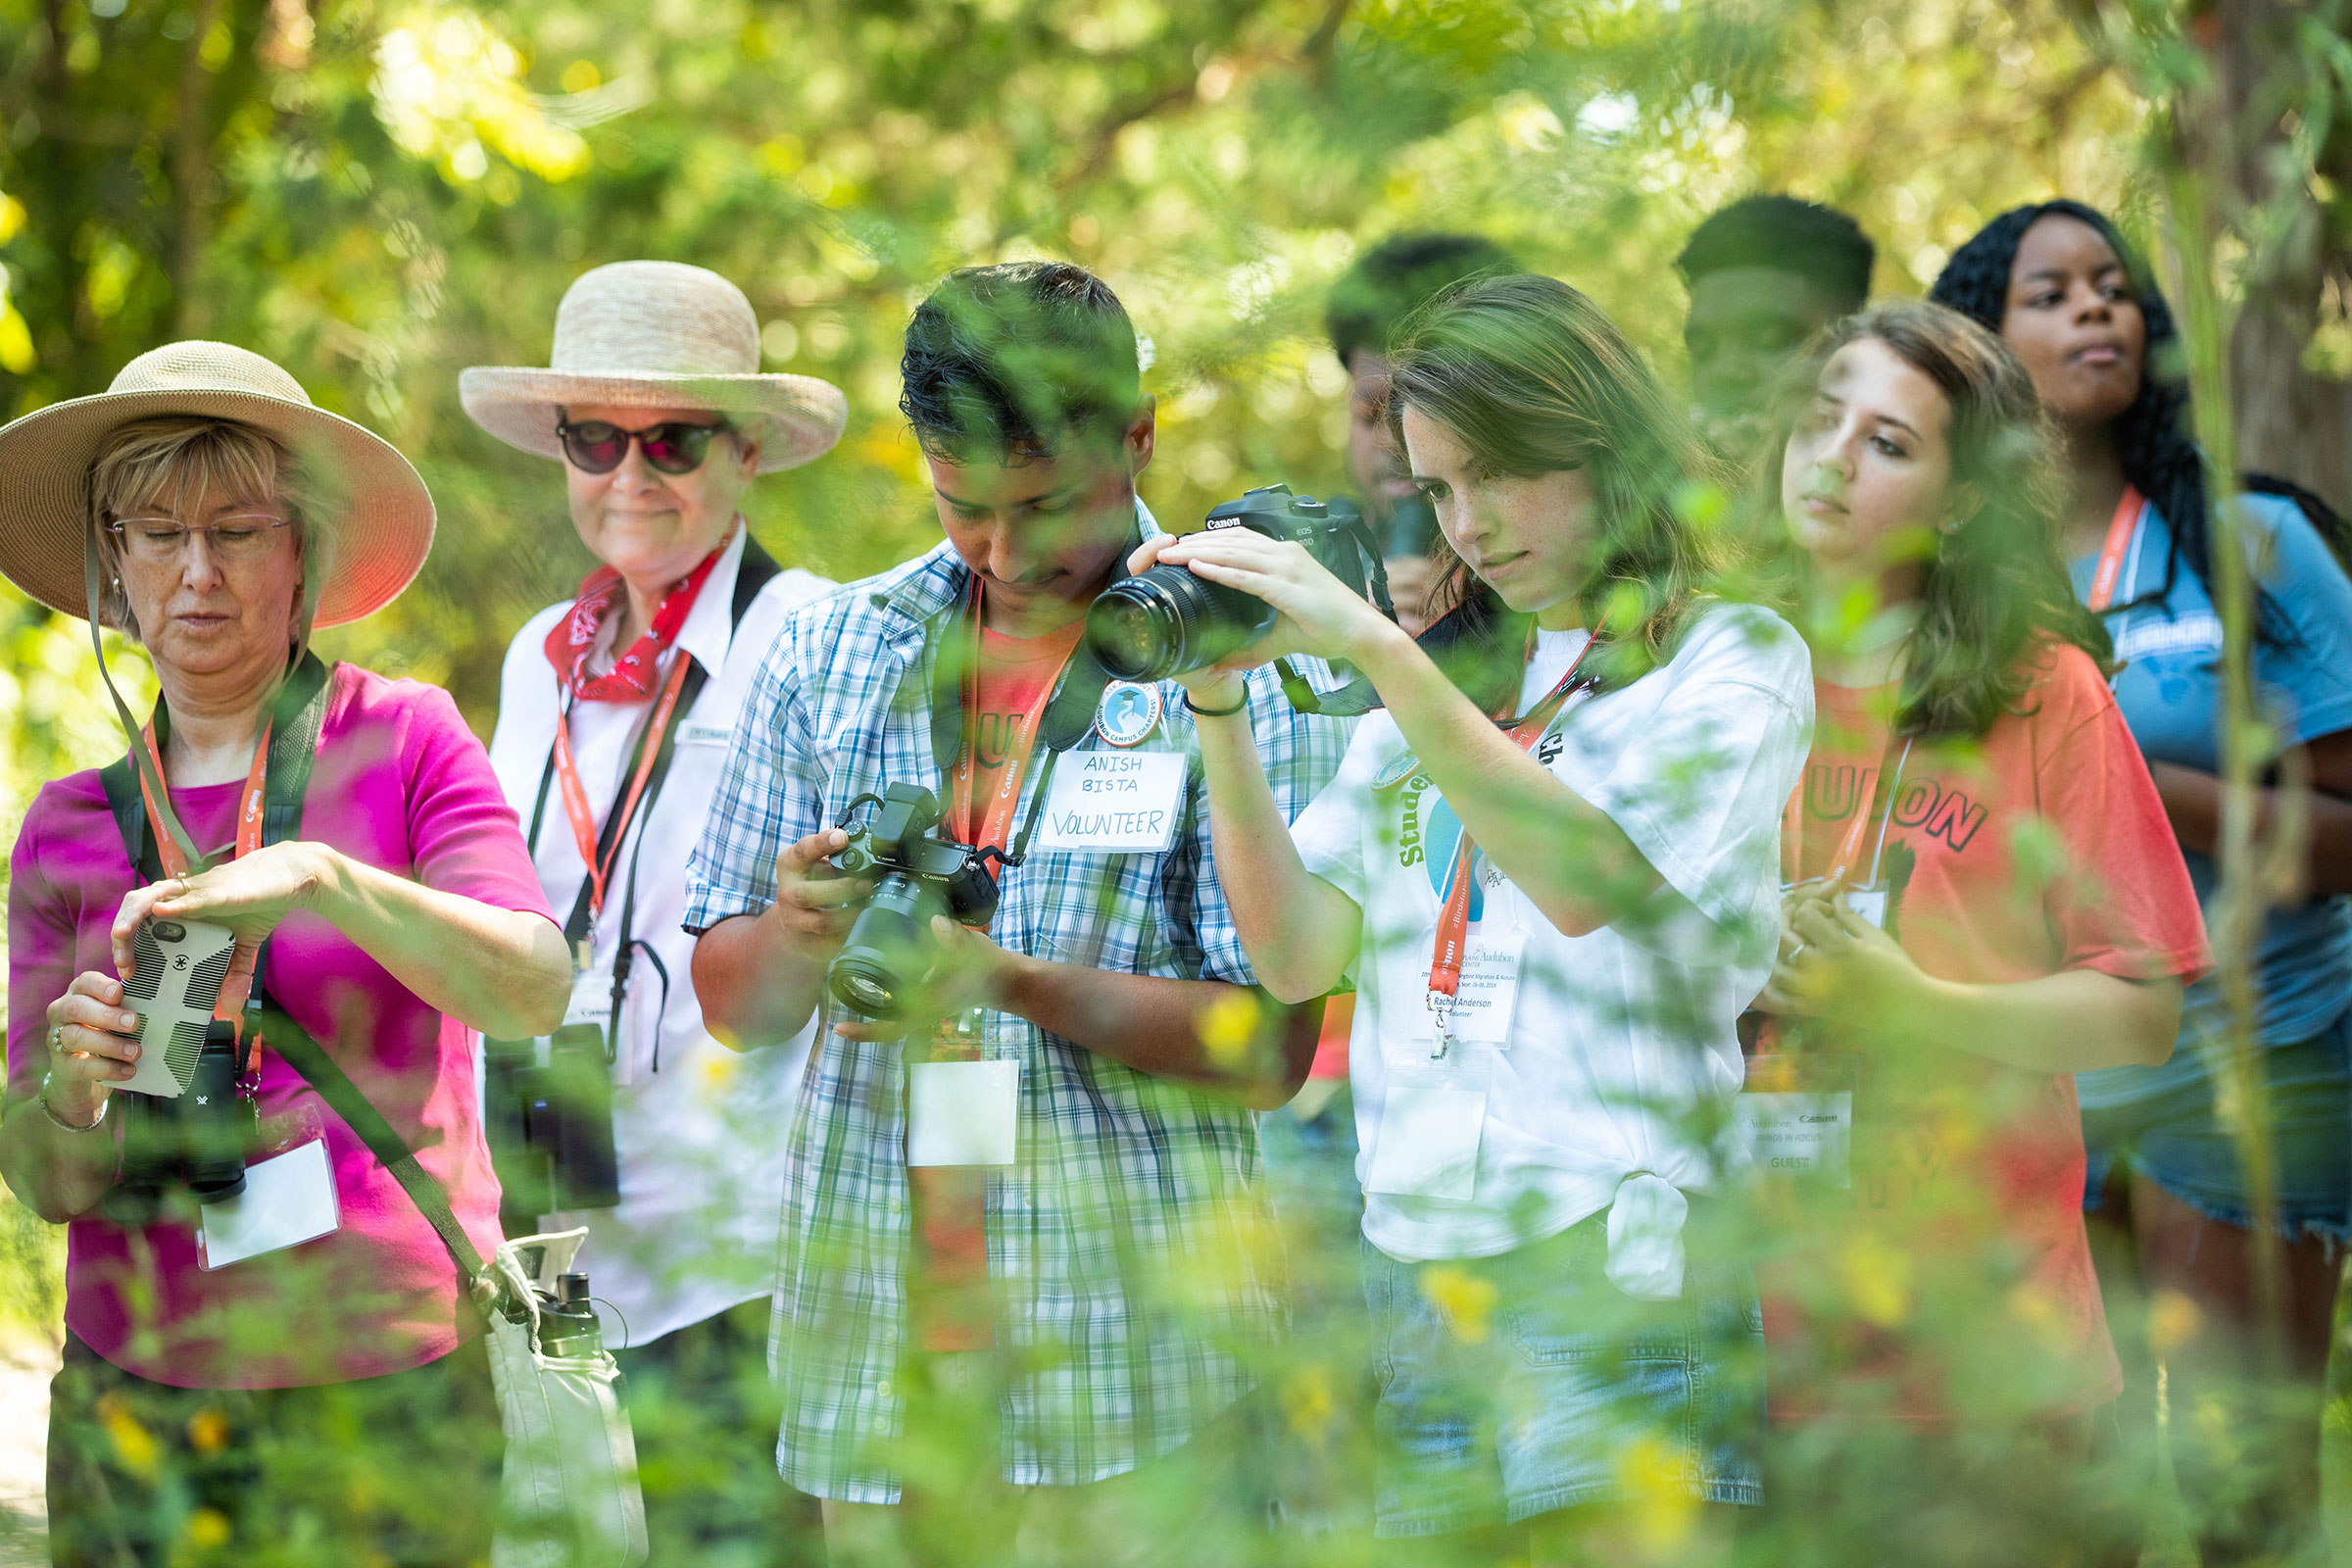 """Anish Bista (Left) and Rachel Anderson (Right), members of the Magnolia Grove Audubon chapter at the University of Mississippi, test out Canon gear on a """"Birds in Focus"""" walk at the Strawberry Plains Hummingbird Festival. Dominic Arenas/Audubon"""